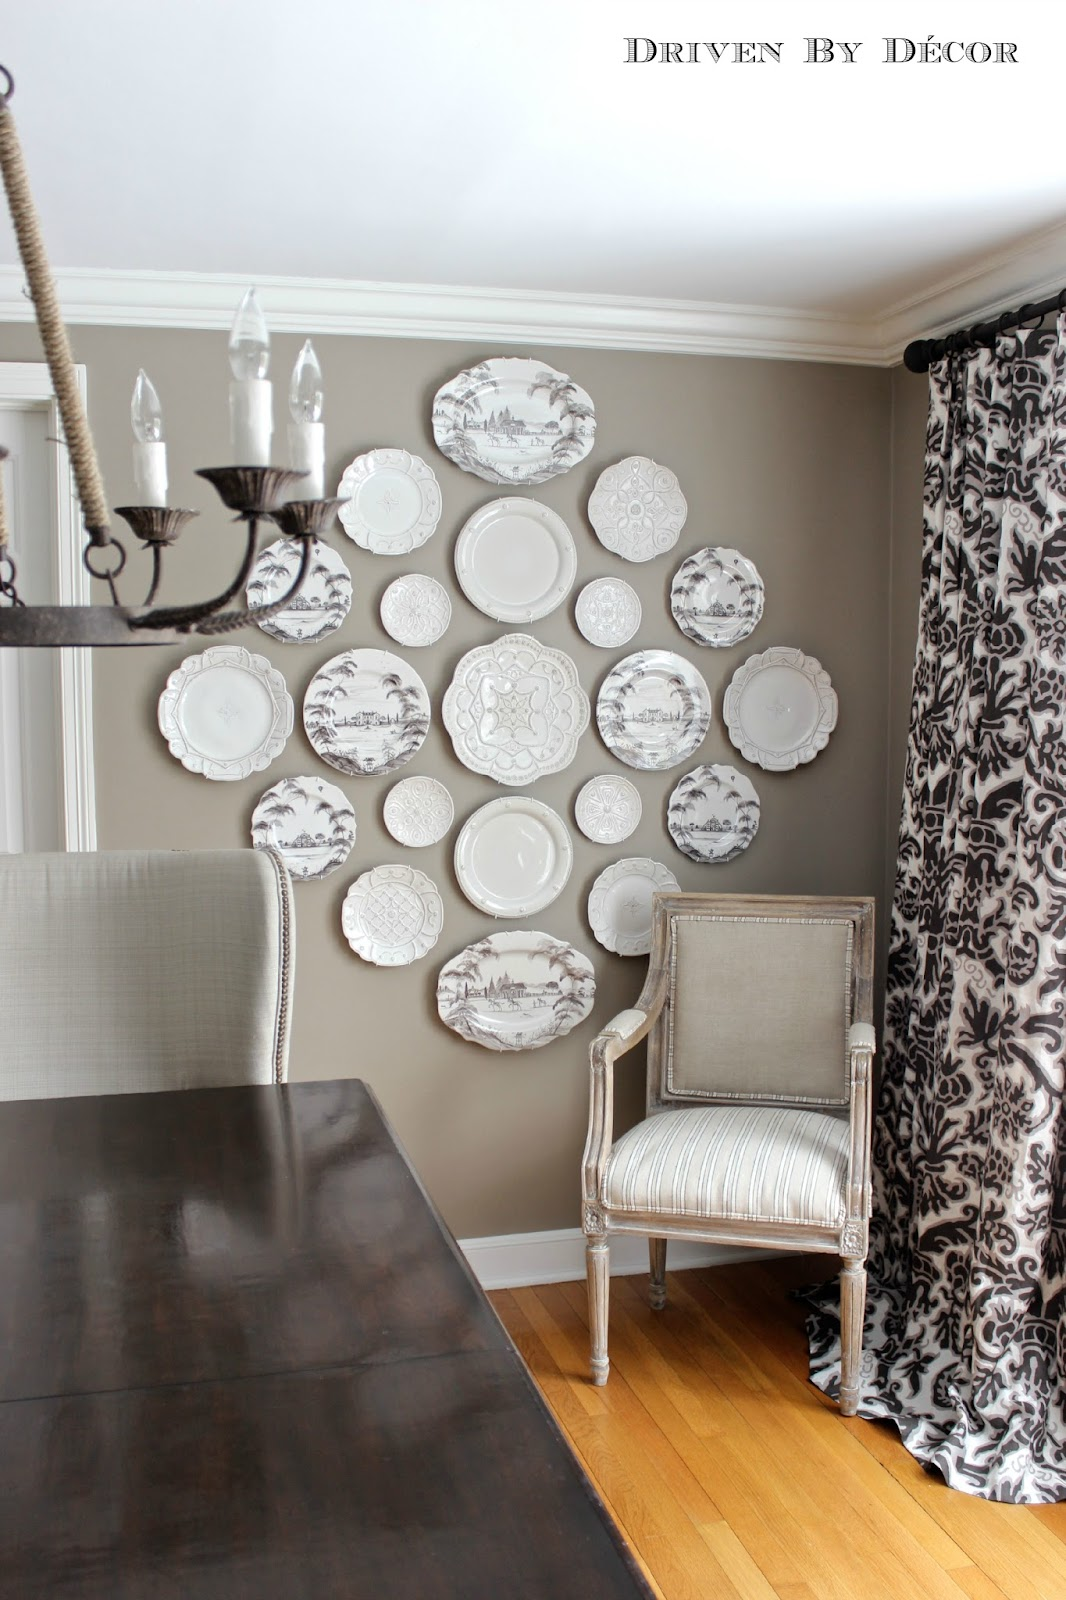 The easy how to for hanging plates on the wall driven for Wall decoration ideas pinterest